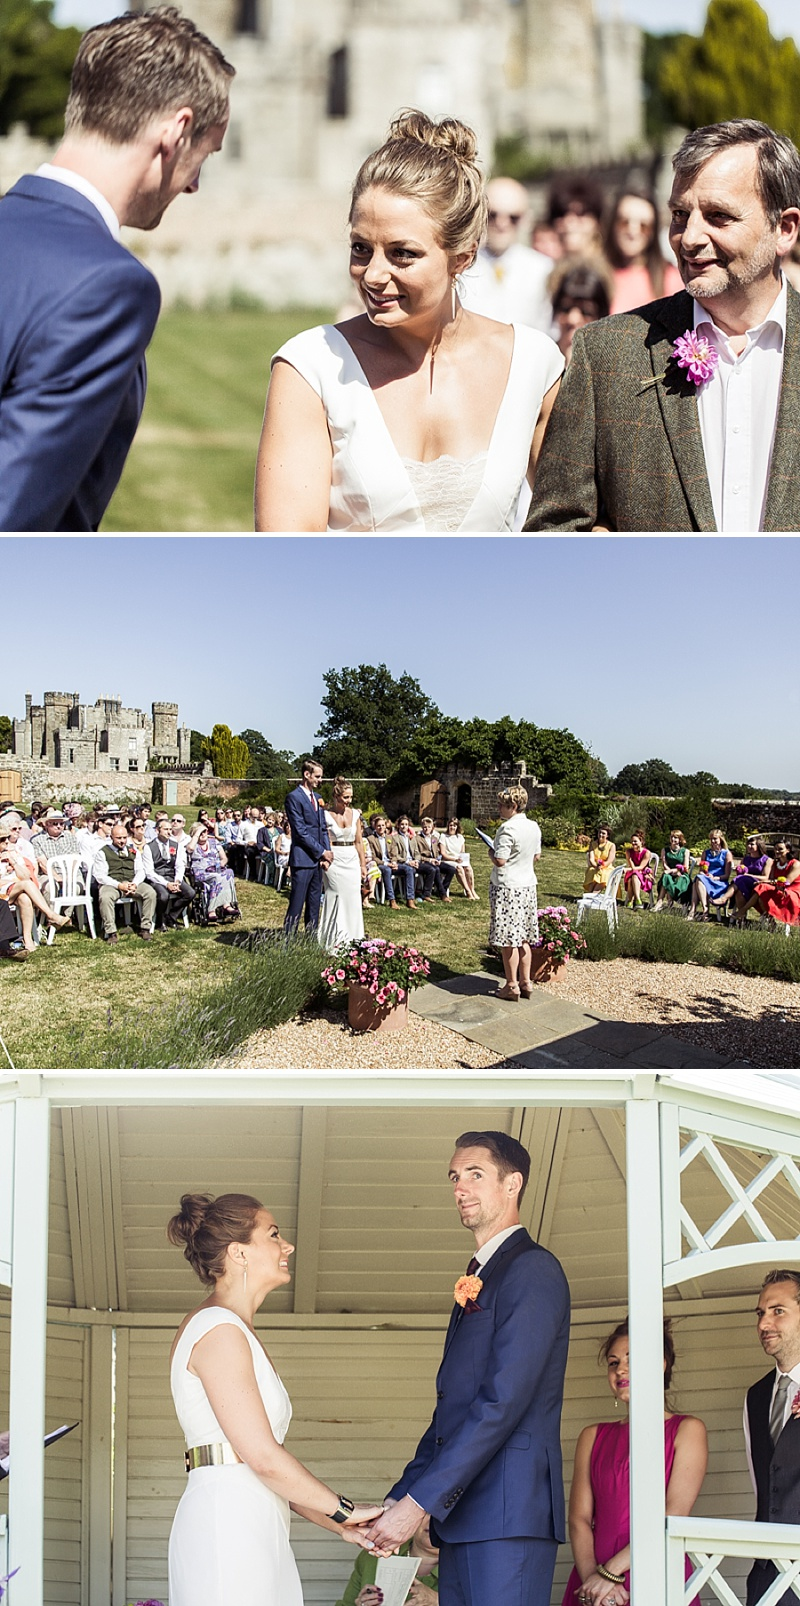 Marquee Wedding In East Sussex, Bride In Self-Designed Gown Made By Angela Webber, With Gold Matthew Williamson Belt, Bright Coloured 50s Style Bridesmaids Dresses, Images by Andrew Marshall_0007a